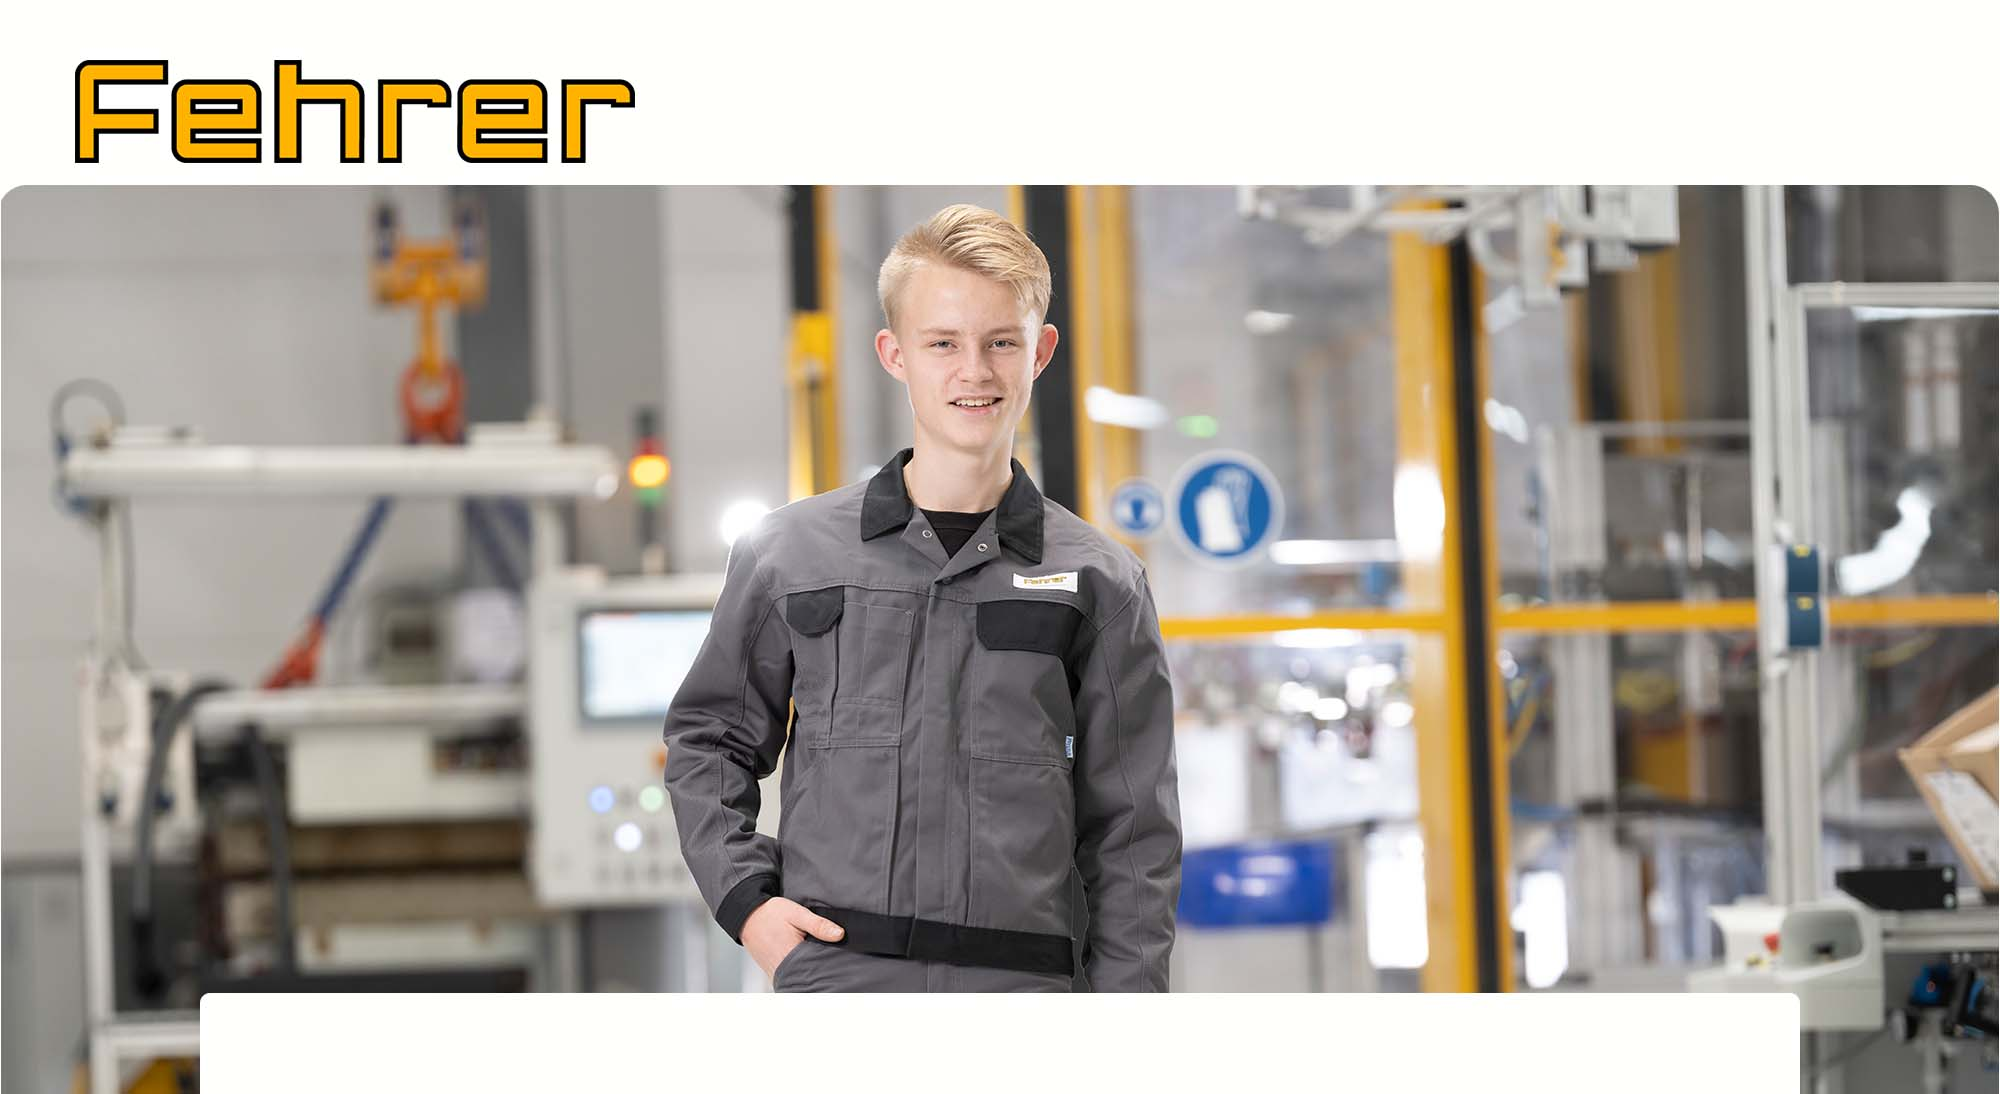 logo fehrer automotive